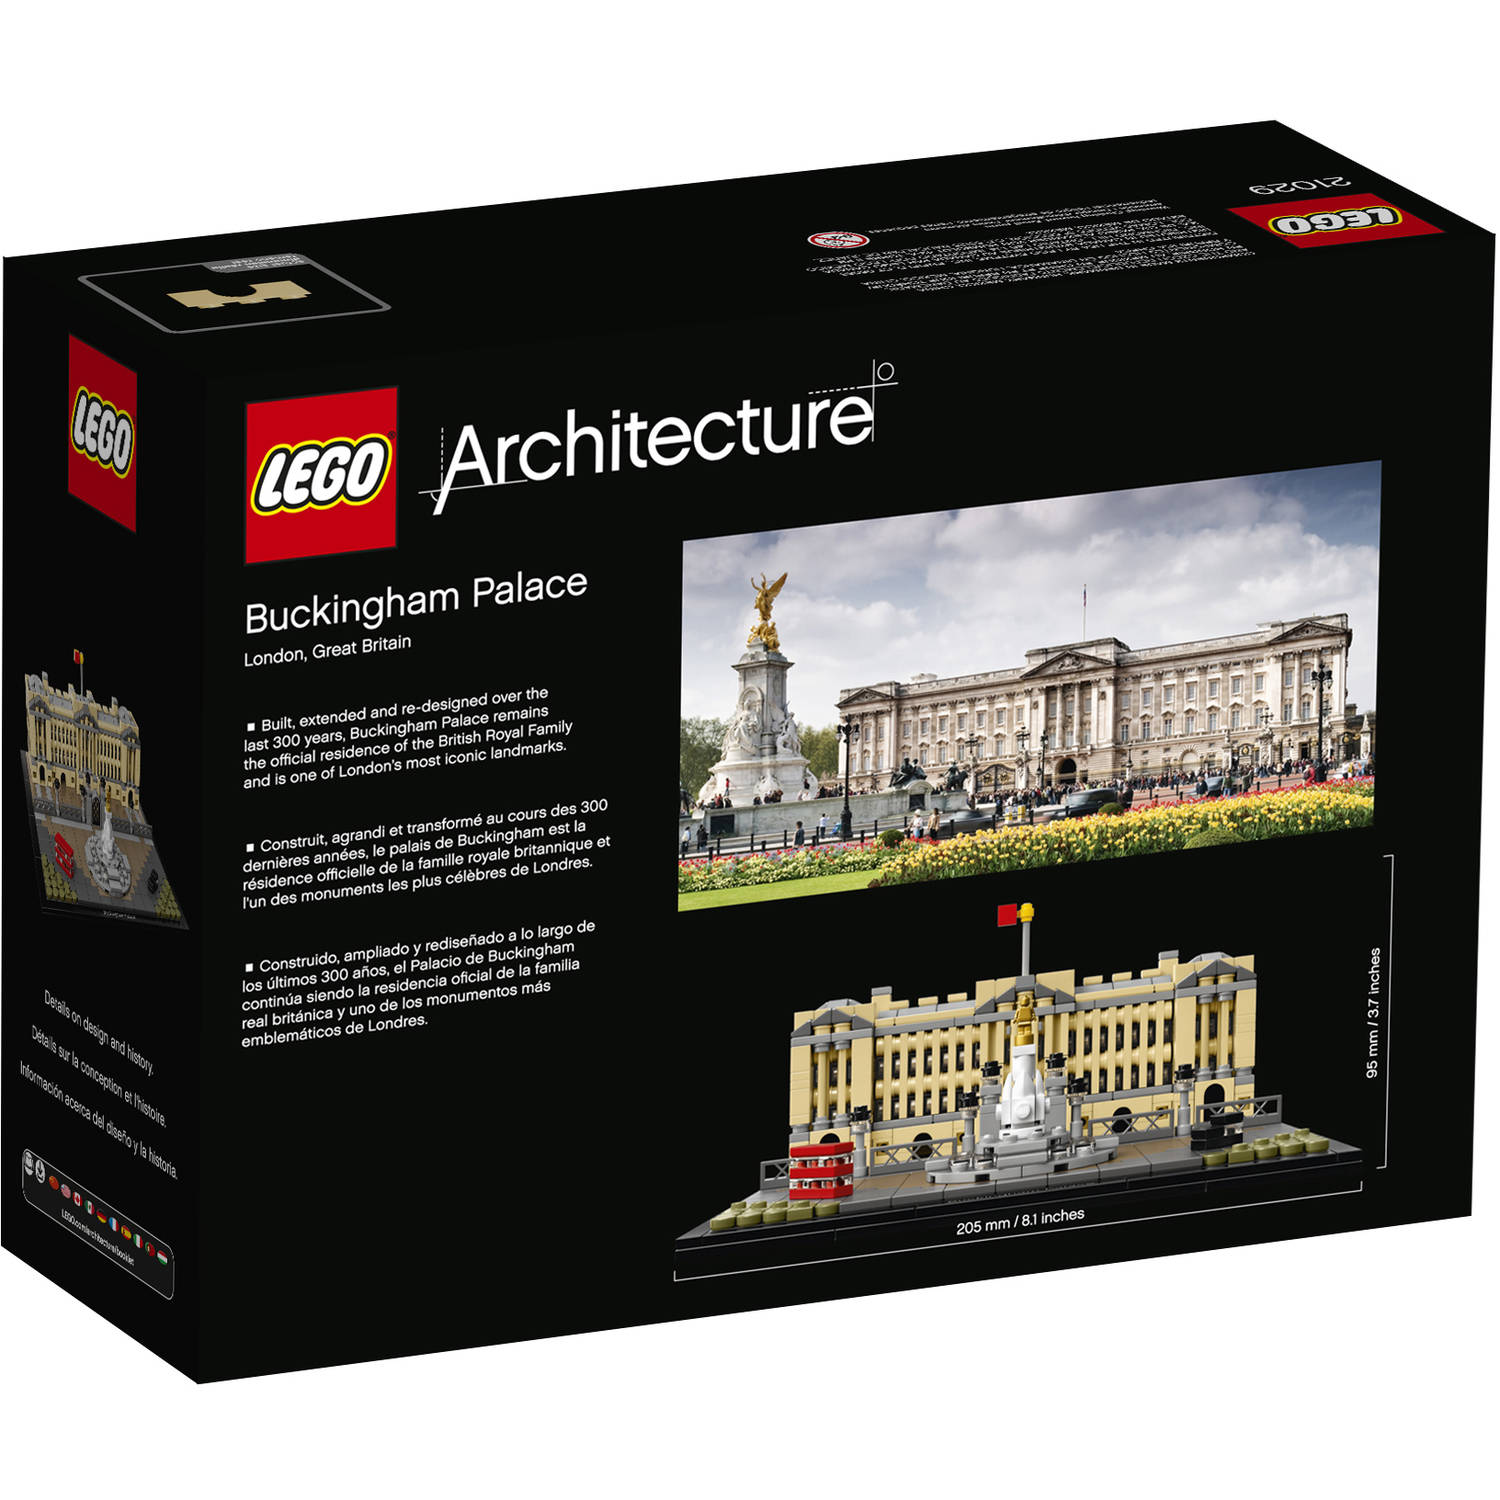 This article is the third in a series about buying and selling used LEGO.. In my previous article, I looked at strategies to get a good deal buying bulk unsorted giveback.cflly there are some complete sets buried in the buckets you bought, but before we can start sorting the bricks into their respective sets, we will need to sort them to see what we've got.